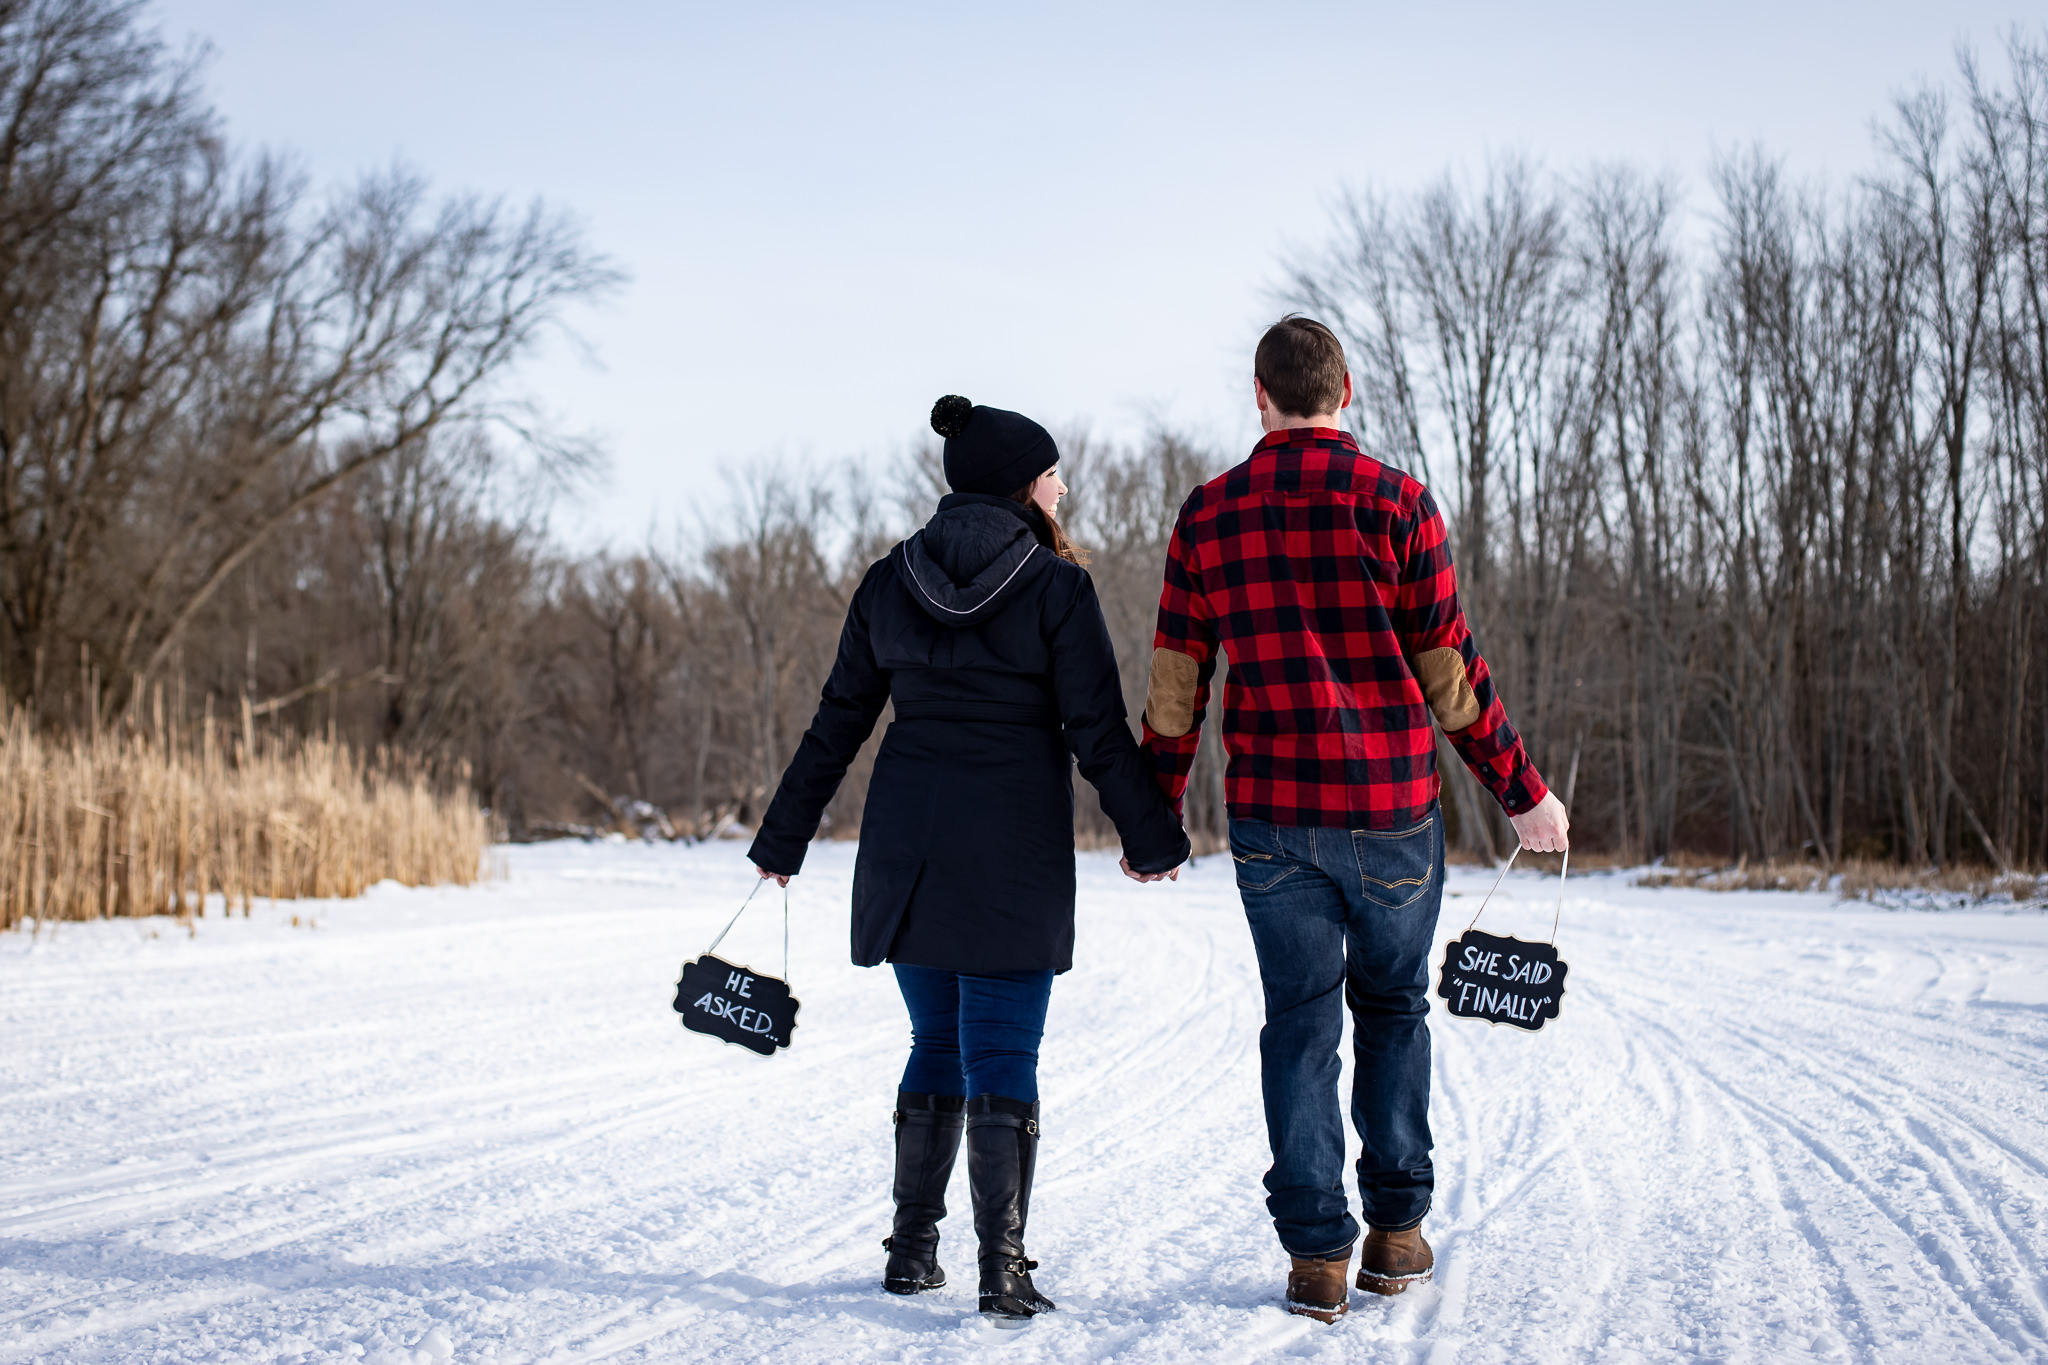 ice-skating-hockey-engagement-photos-12.jpg